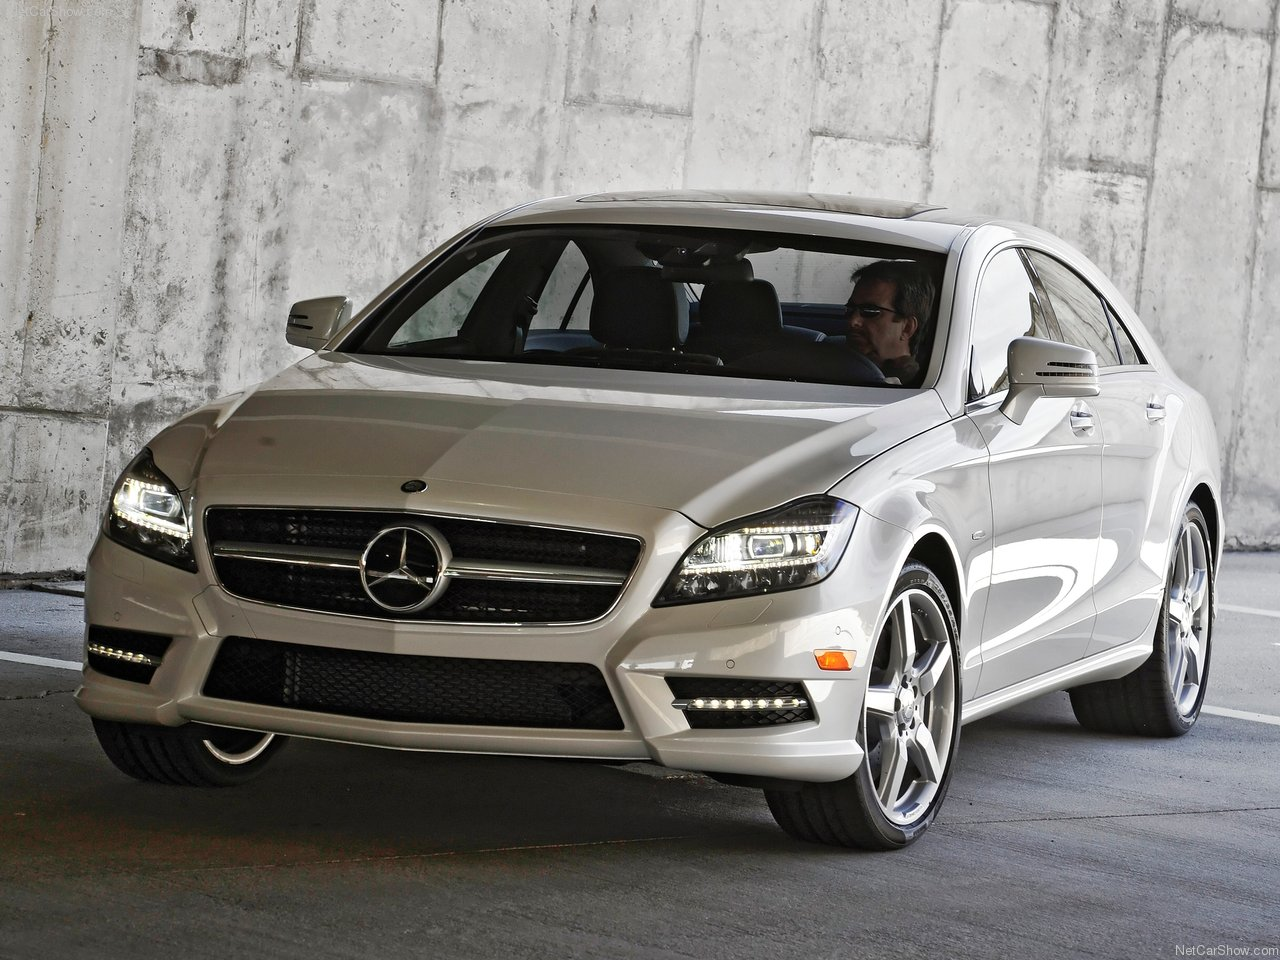 2012 mercedes benz cls550 mercedes benz cars. Black Bedroom Furniture Sets. Home Design Ideas